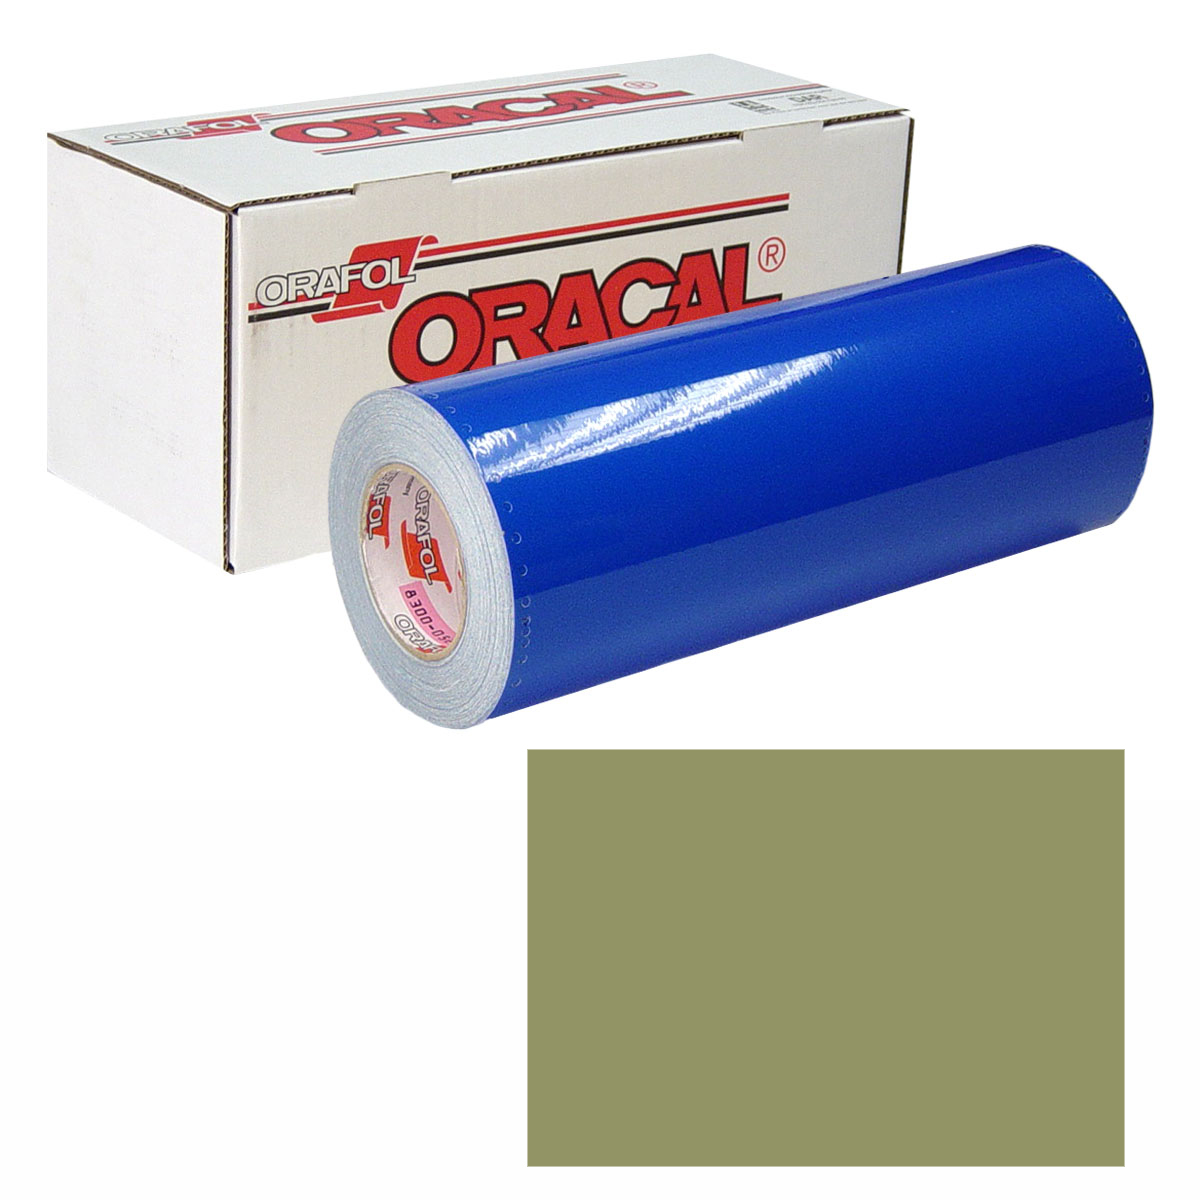 ORACAL 631 Unp 30In X 10Yd 493 Olive